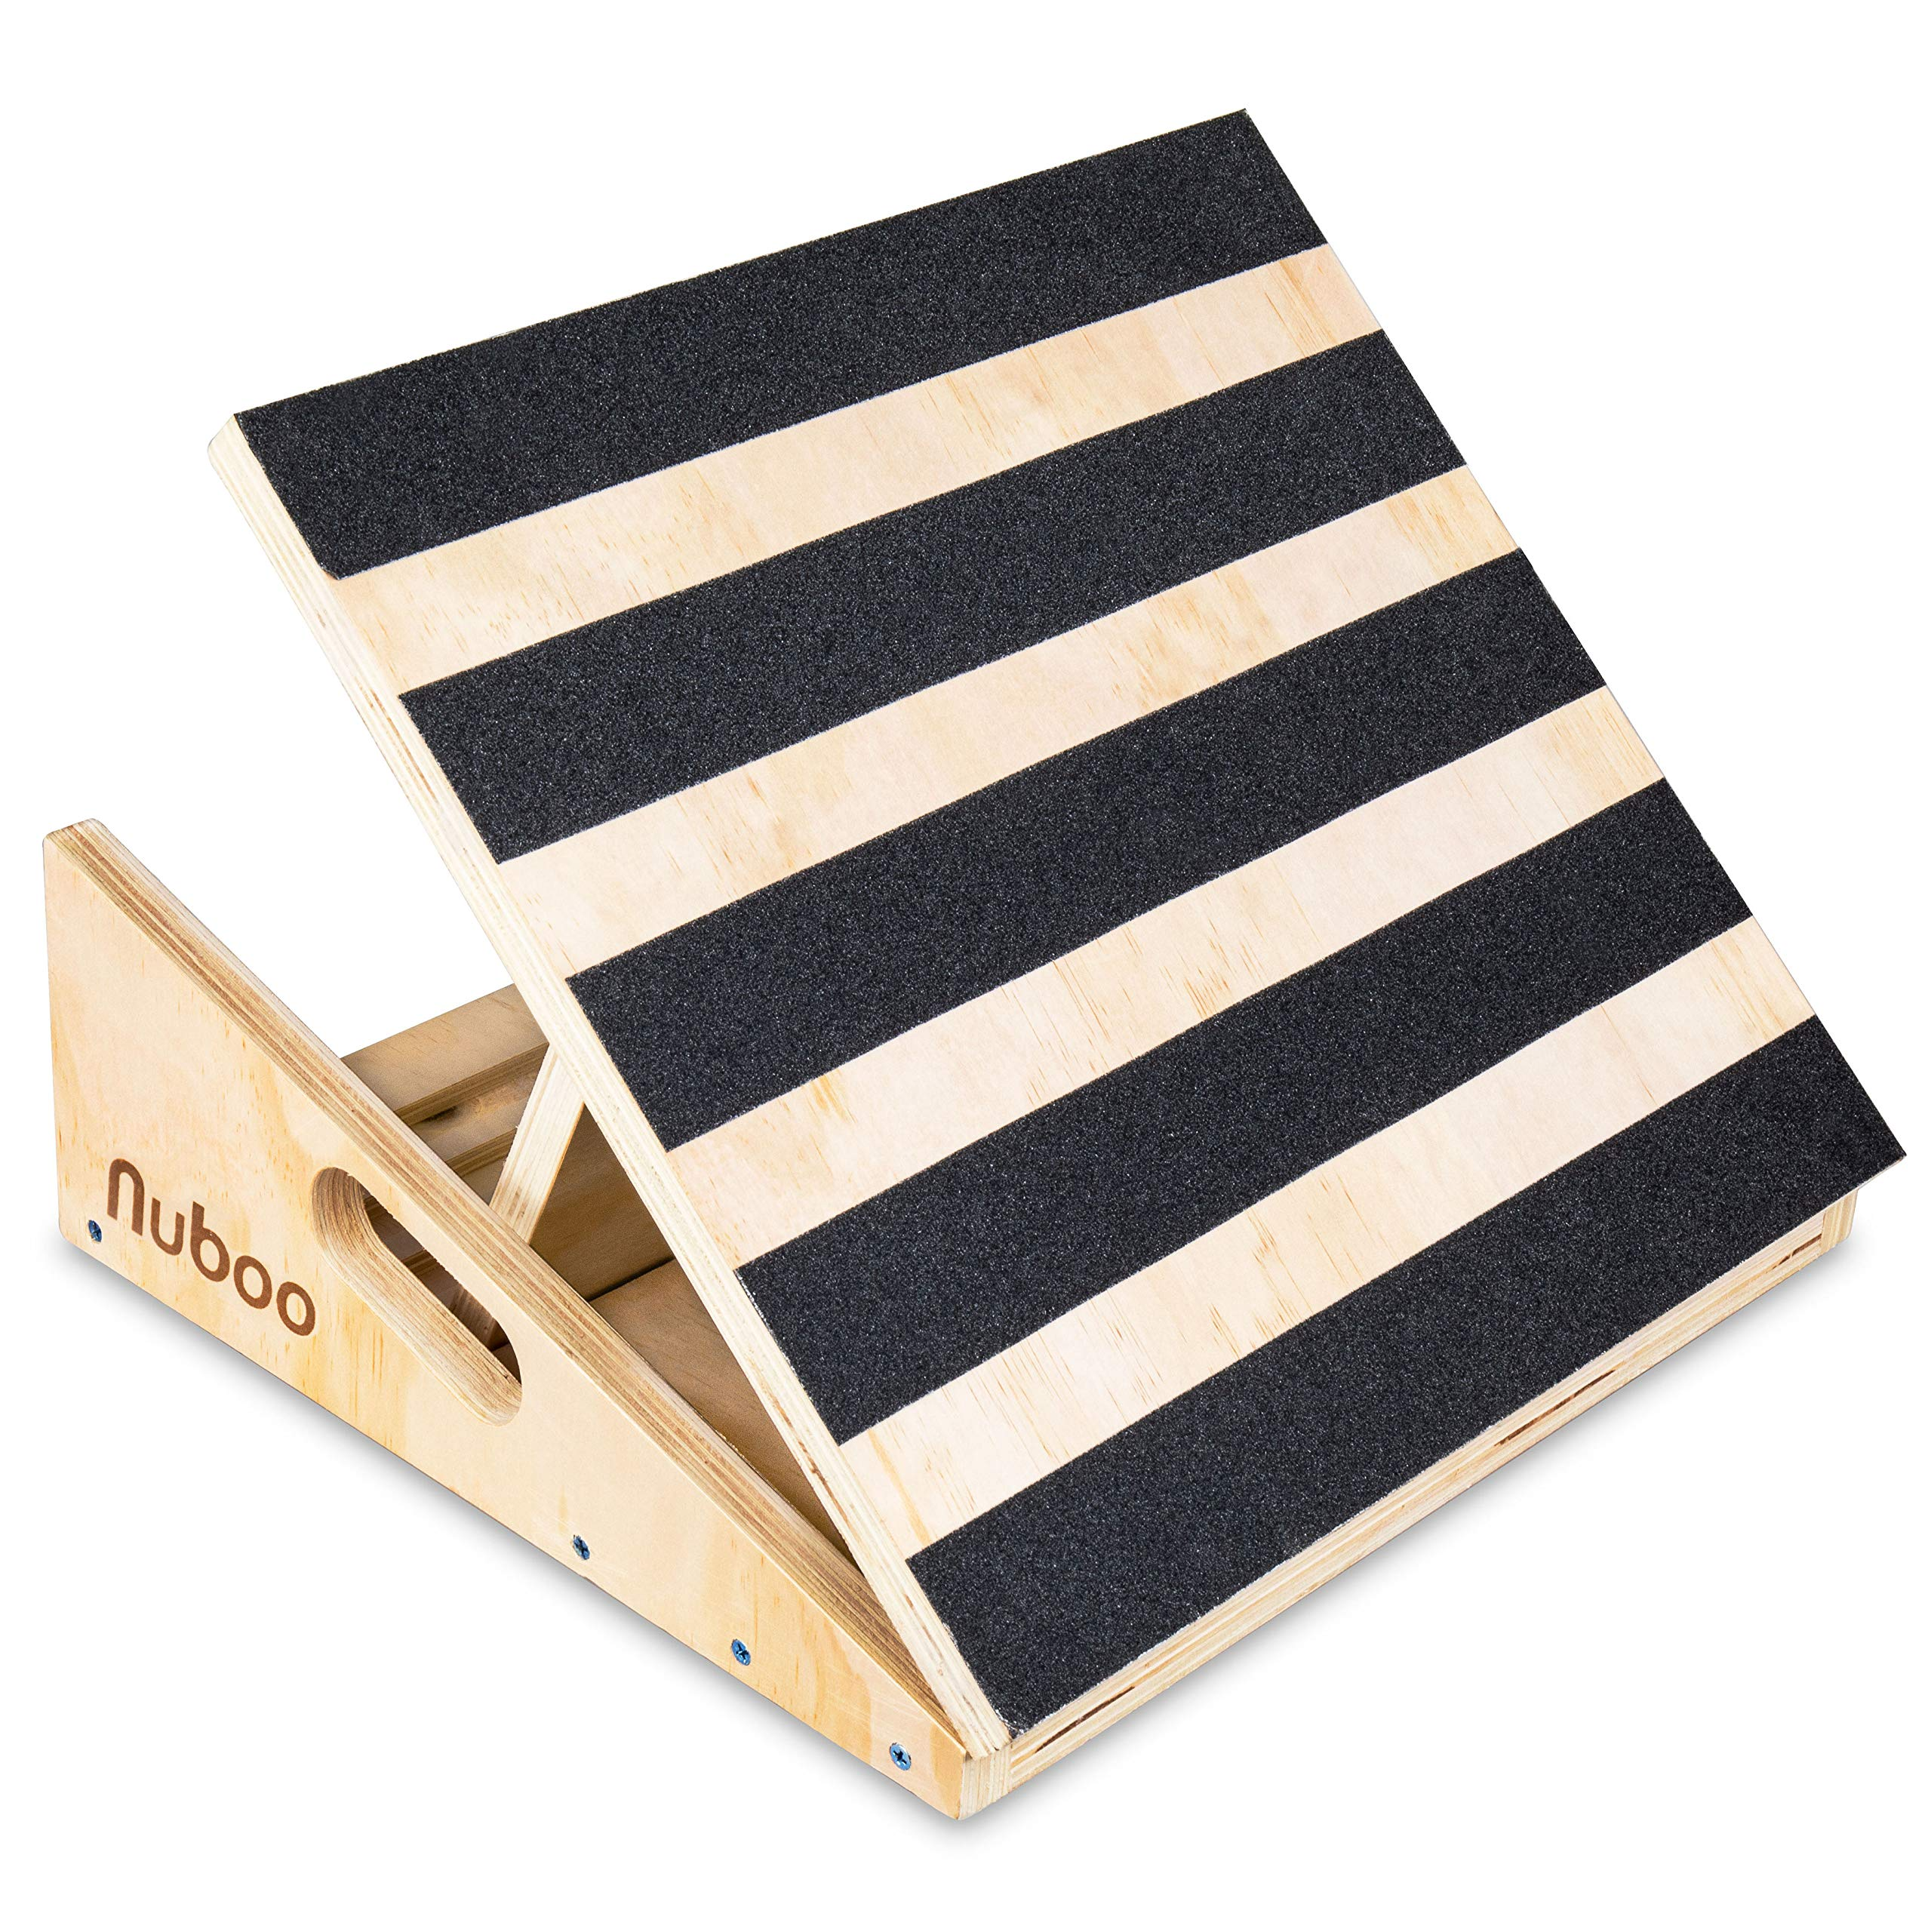 Extra Wide Wooden Calf Stretcher Slant Board for Inclined Stretches Physical Therapy and Recovery from Sports Injuries. 16'' Wide and 5 Stage Adjustable Incline for Gradual and Long-term Recovery. by Nuboo